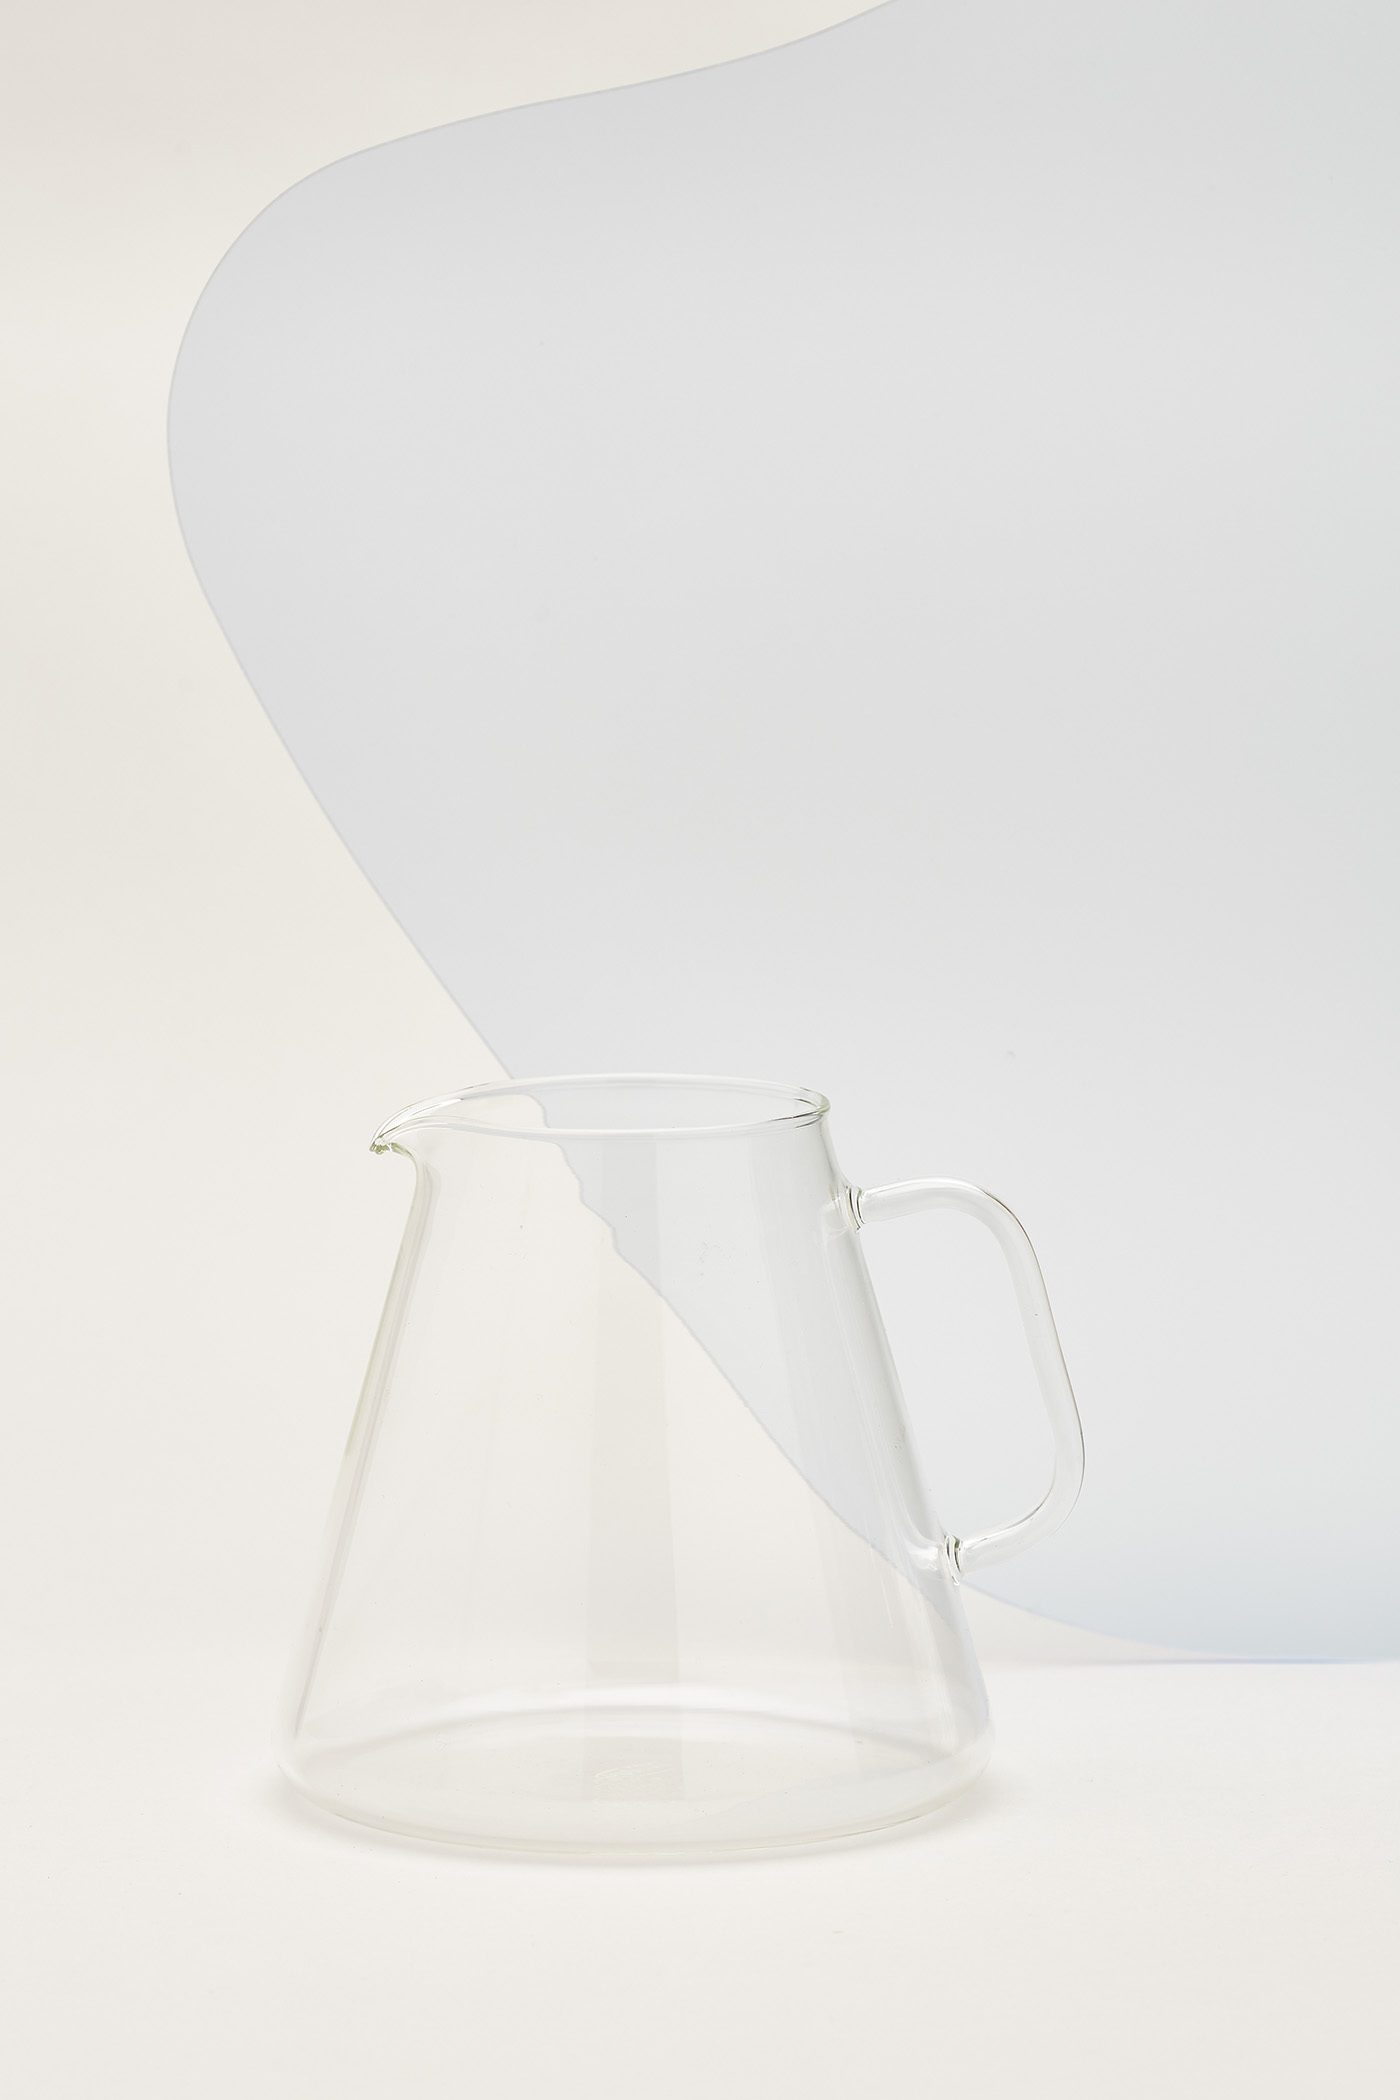 Trendglas Bari Glass Pot